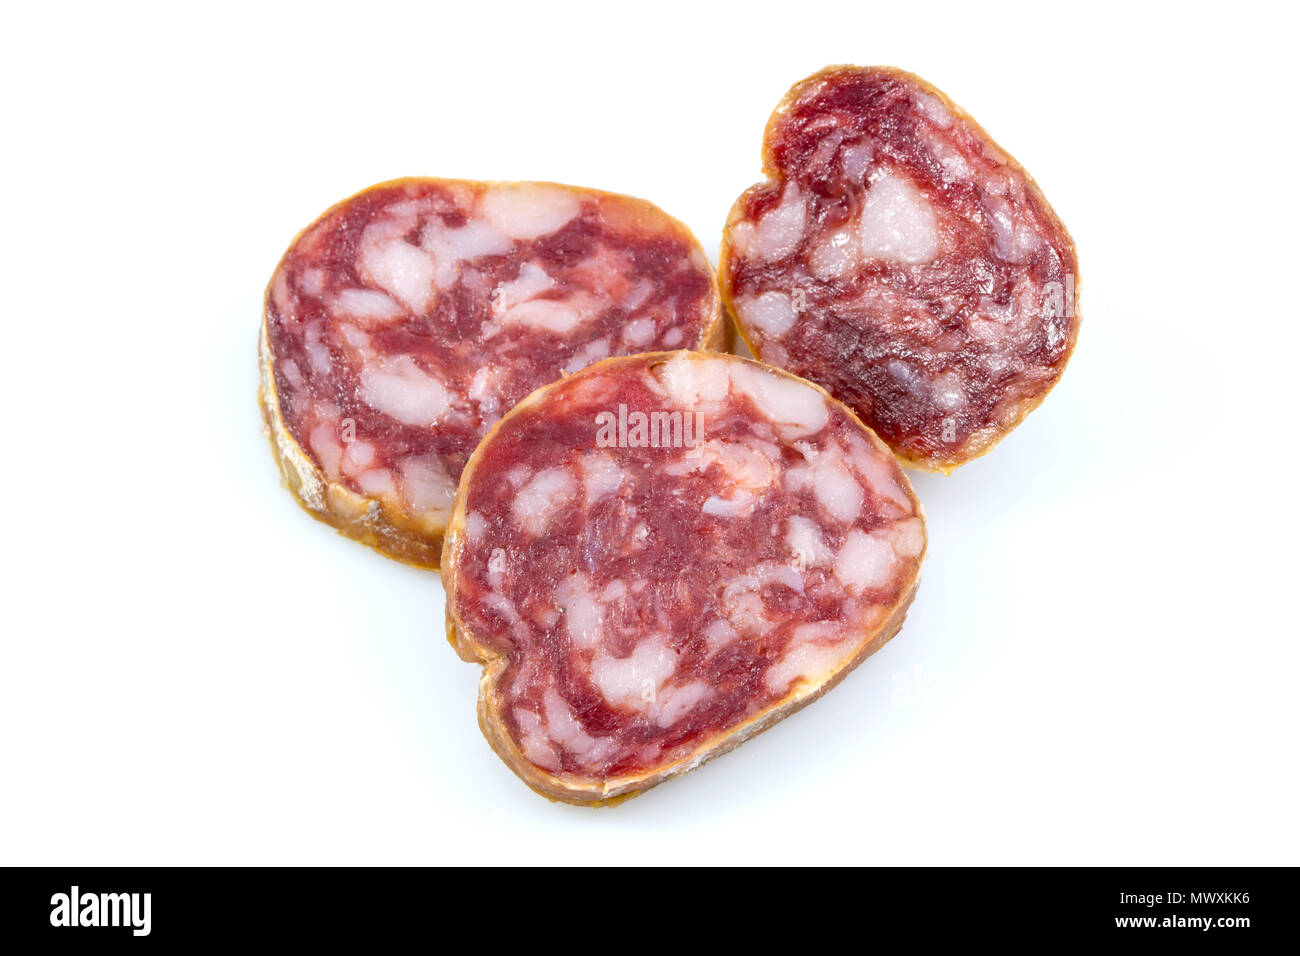 Top view macro detail of smoked salami slices, pepperoni slice, Italian prosciutto crudo ,raw ham texture isolated on white background , with clipping - Stock Image